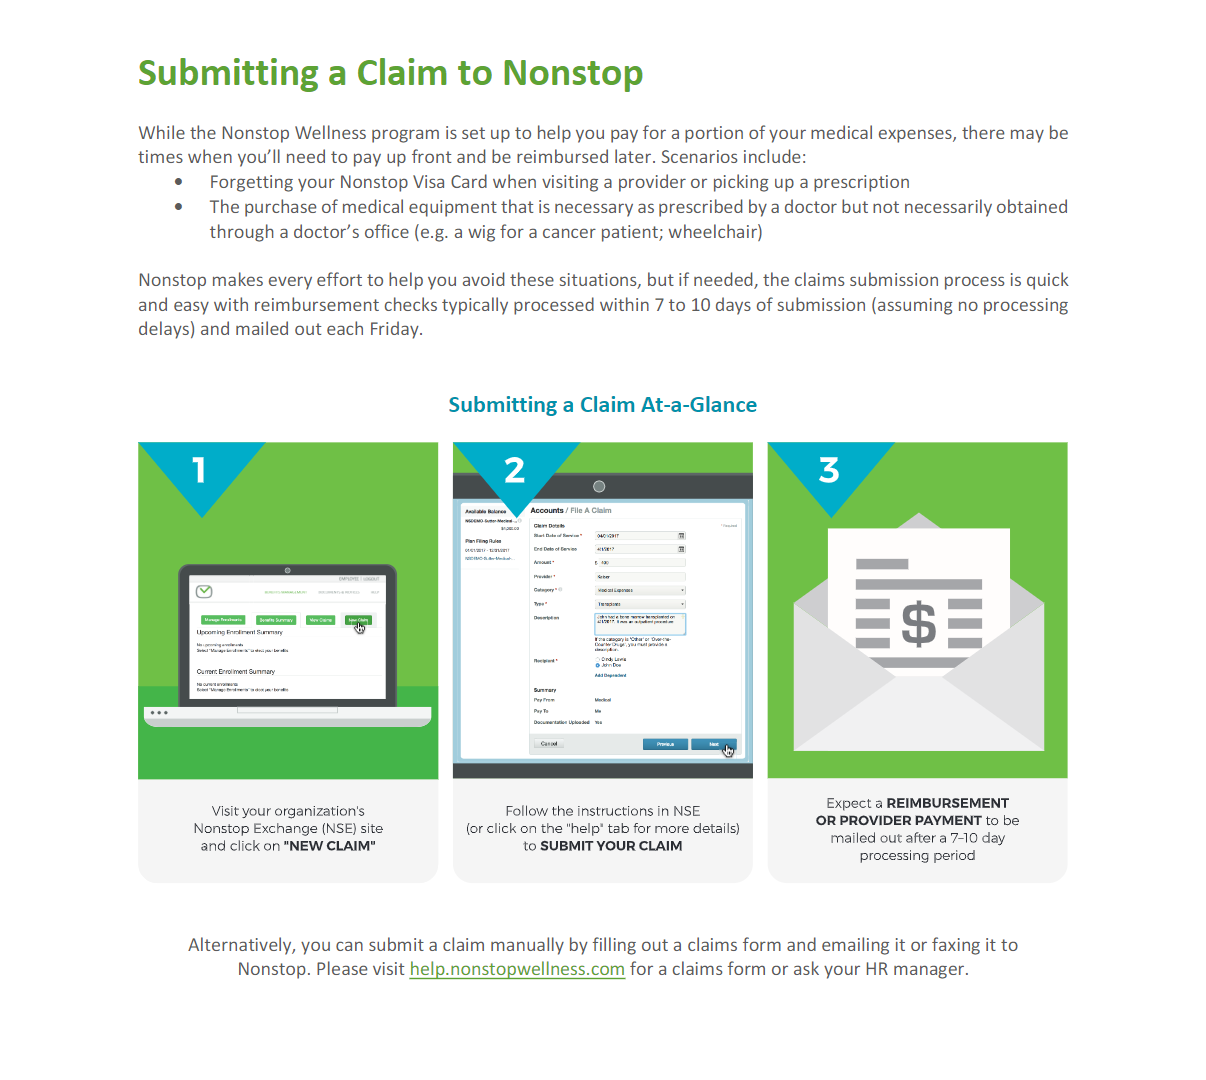 Submitting-A-Claim-to-Nonstop-Graphic